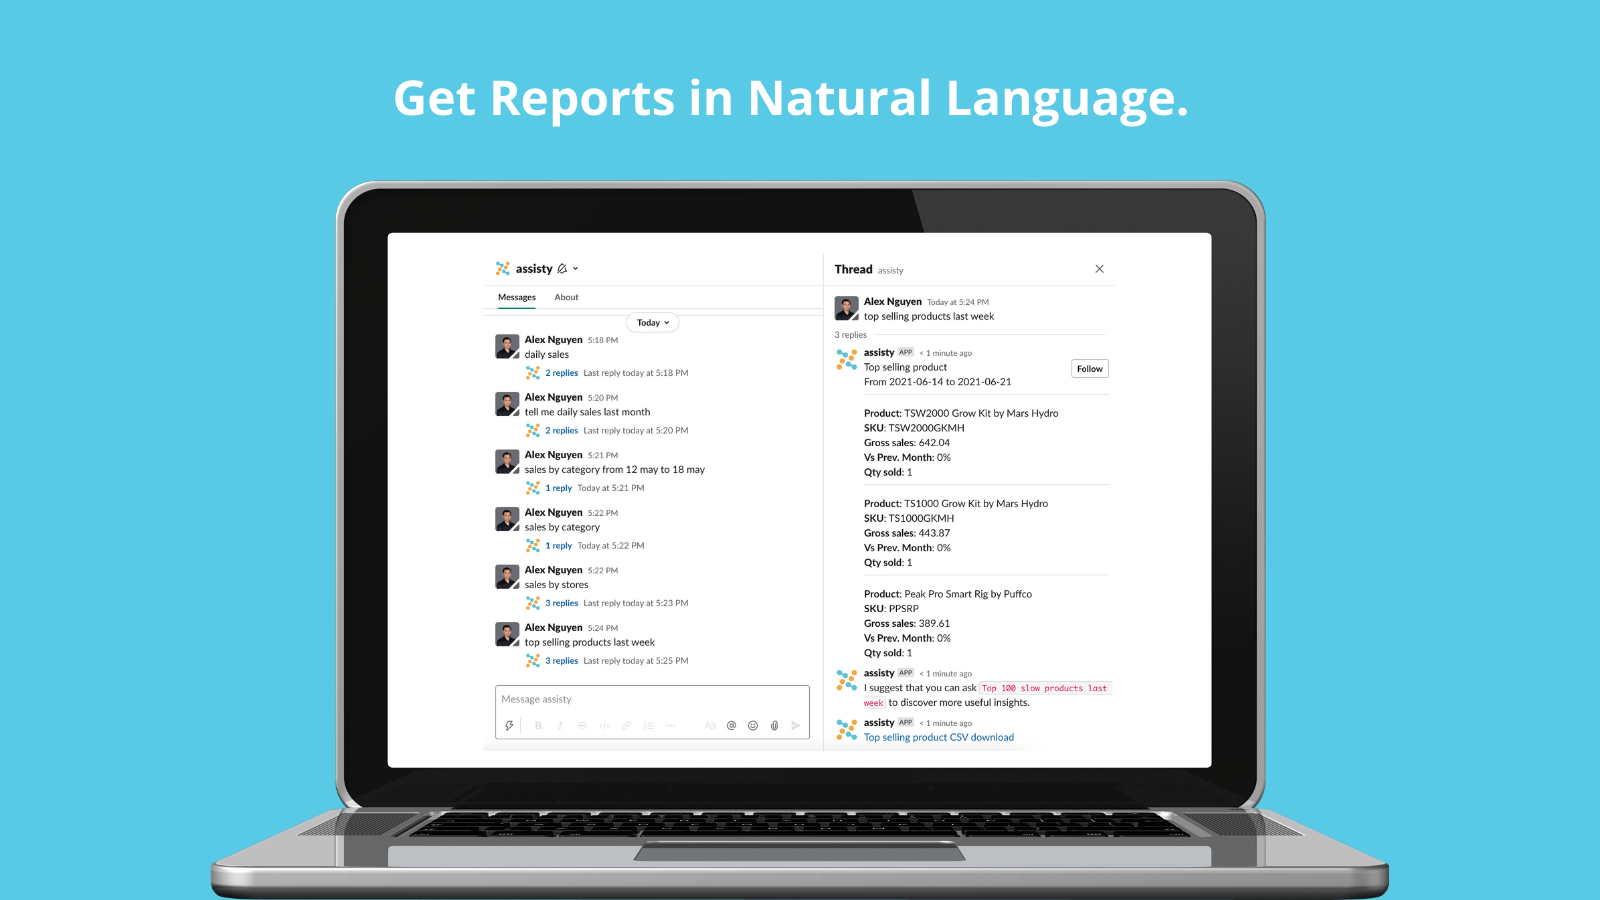 Get reports in natural language